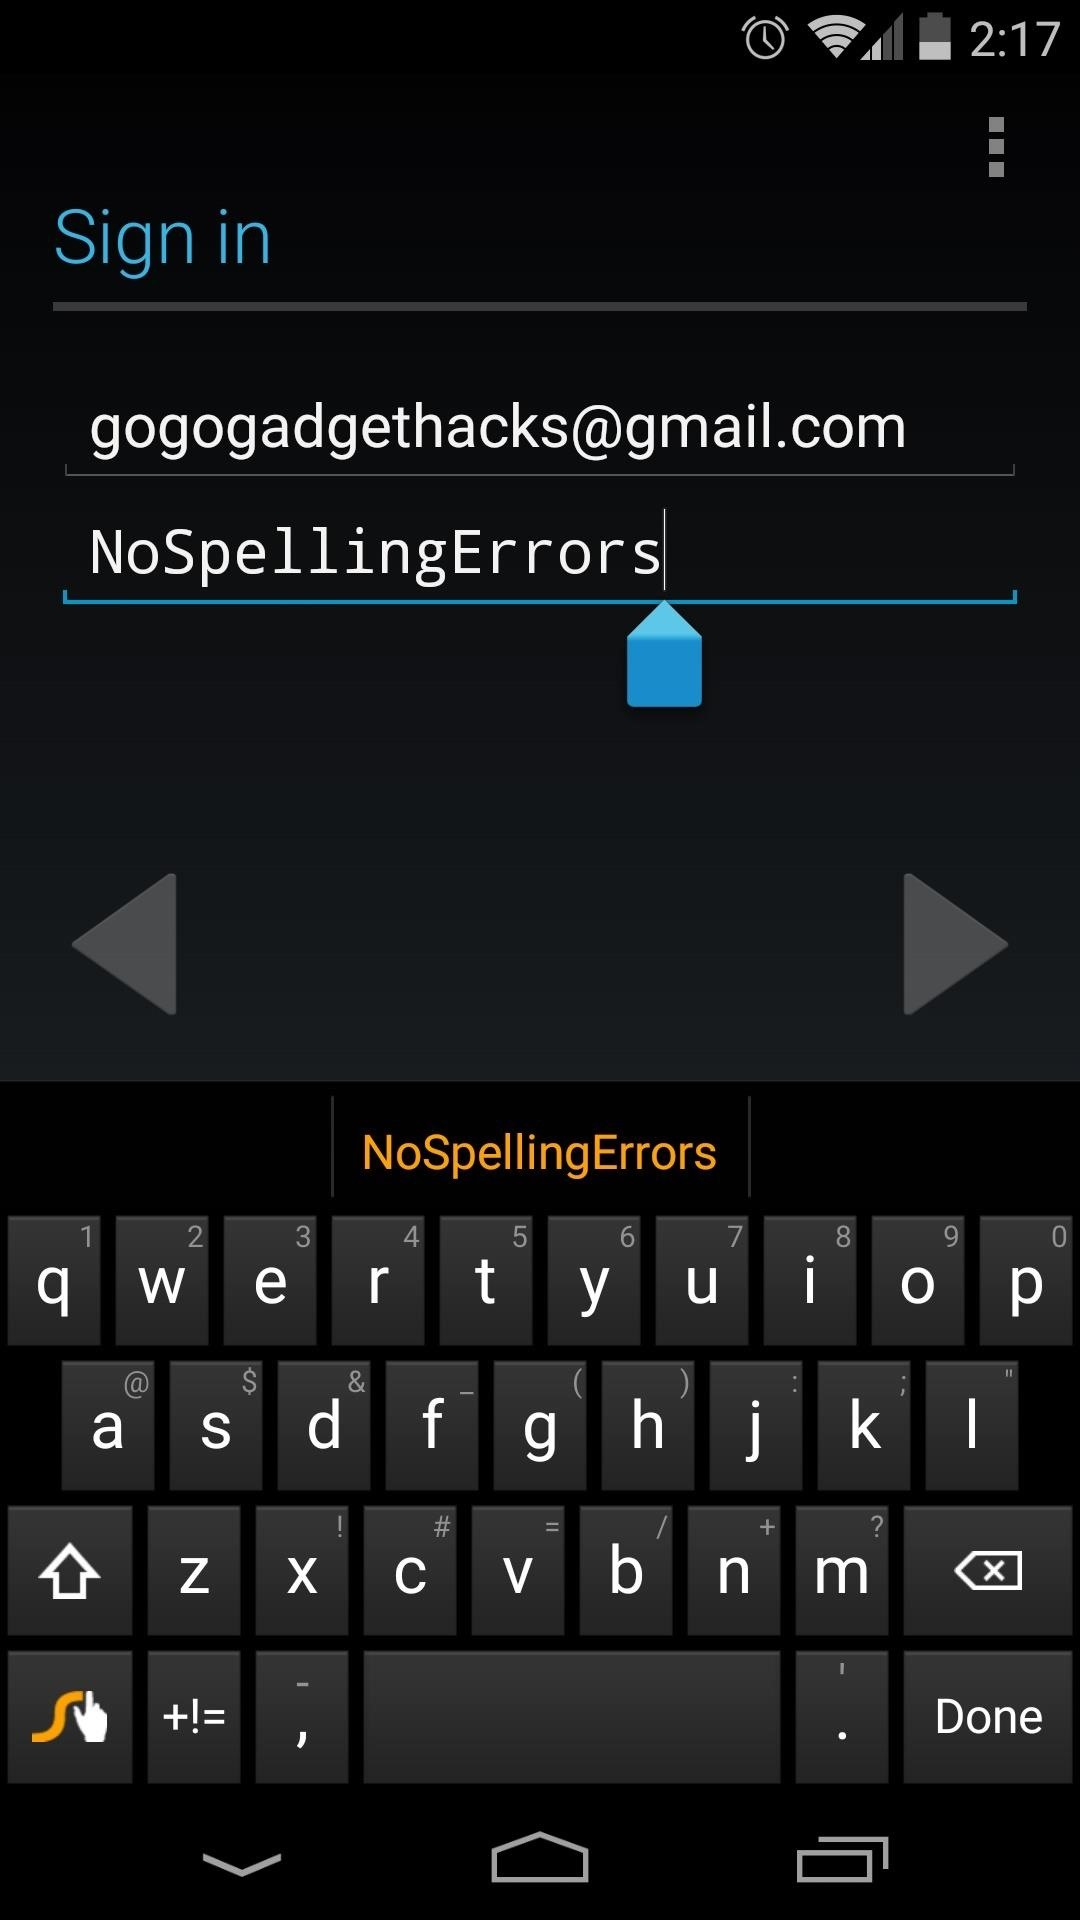 Remove Password Obfuscation from Your Nexus 5 for Easier App Logins